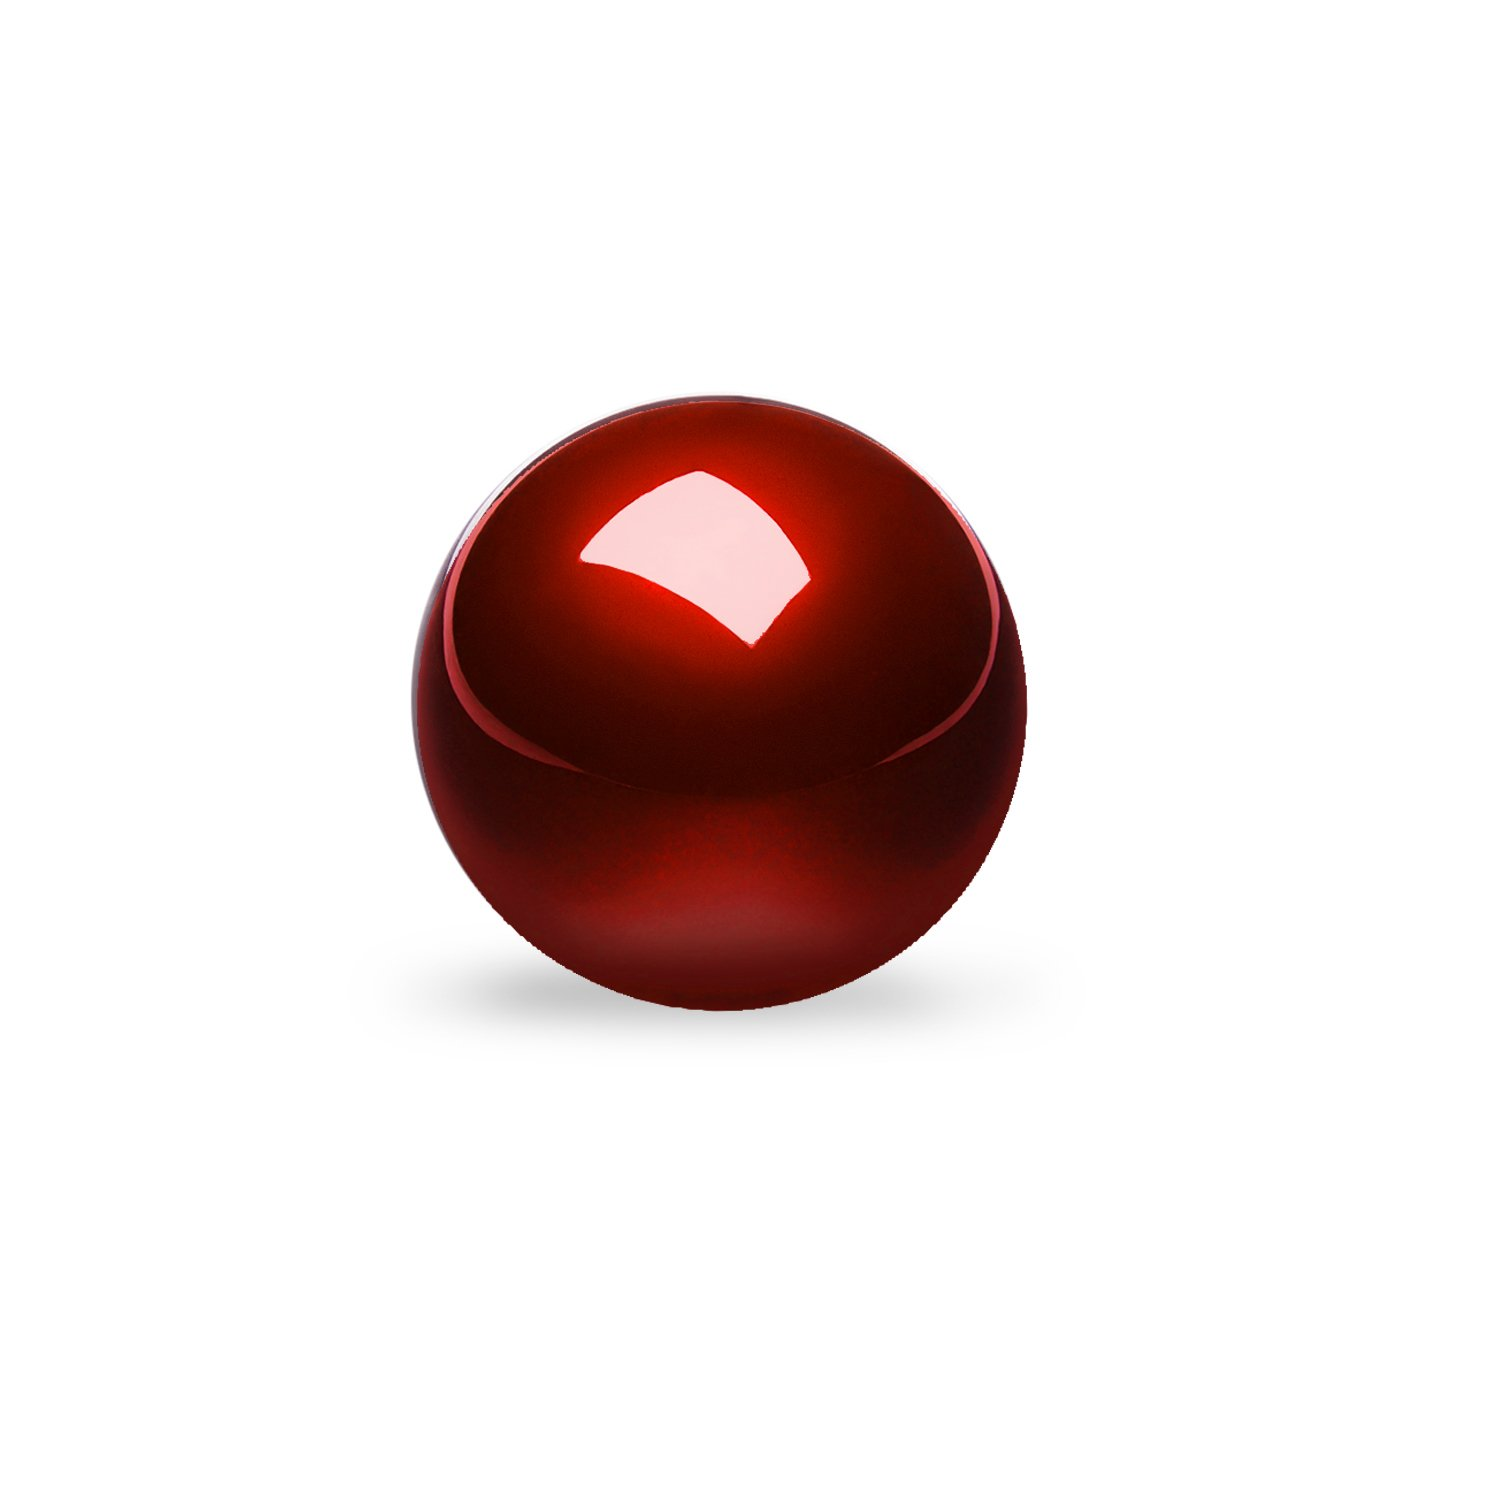 Perixx 18033 PERIPRO-304 2.17'' Trackball, Glossy Finish, Speed, Red, Compatible Mouse